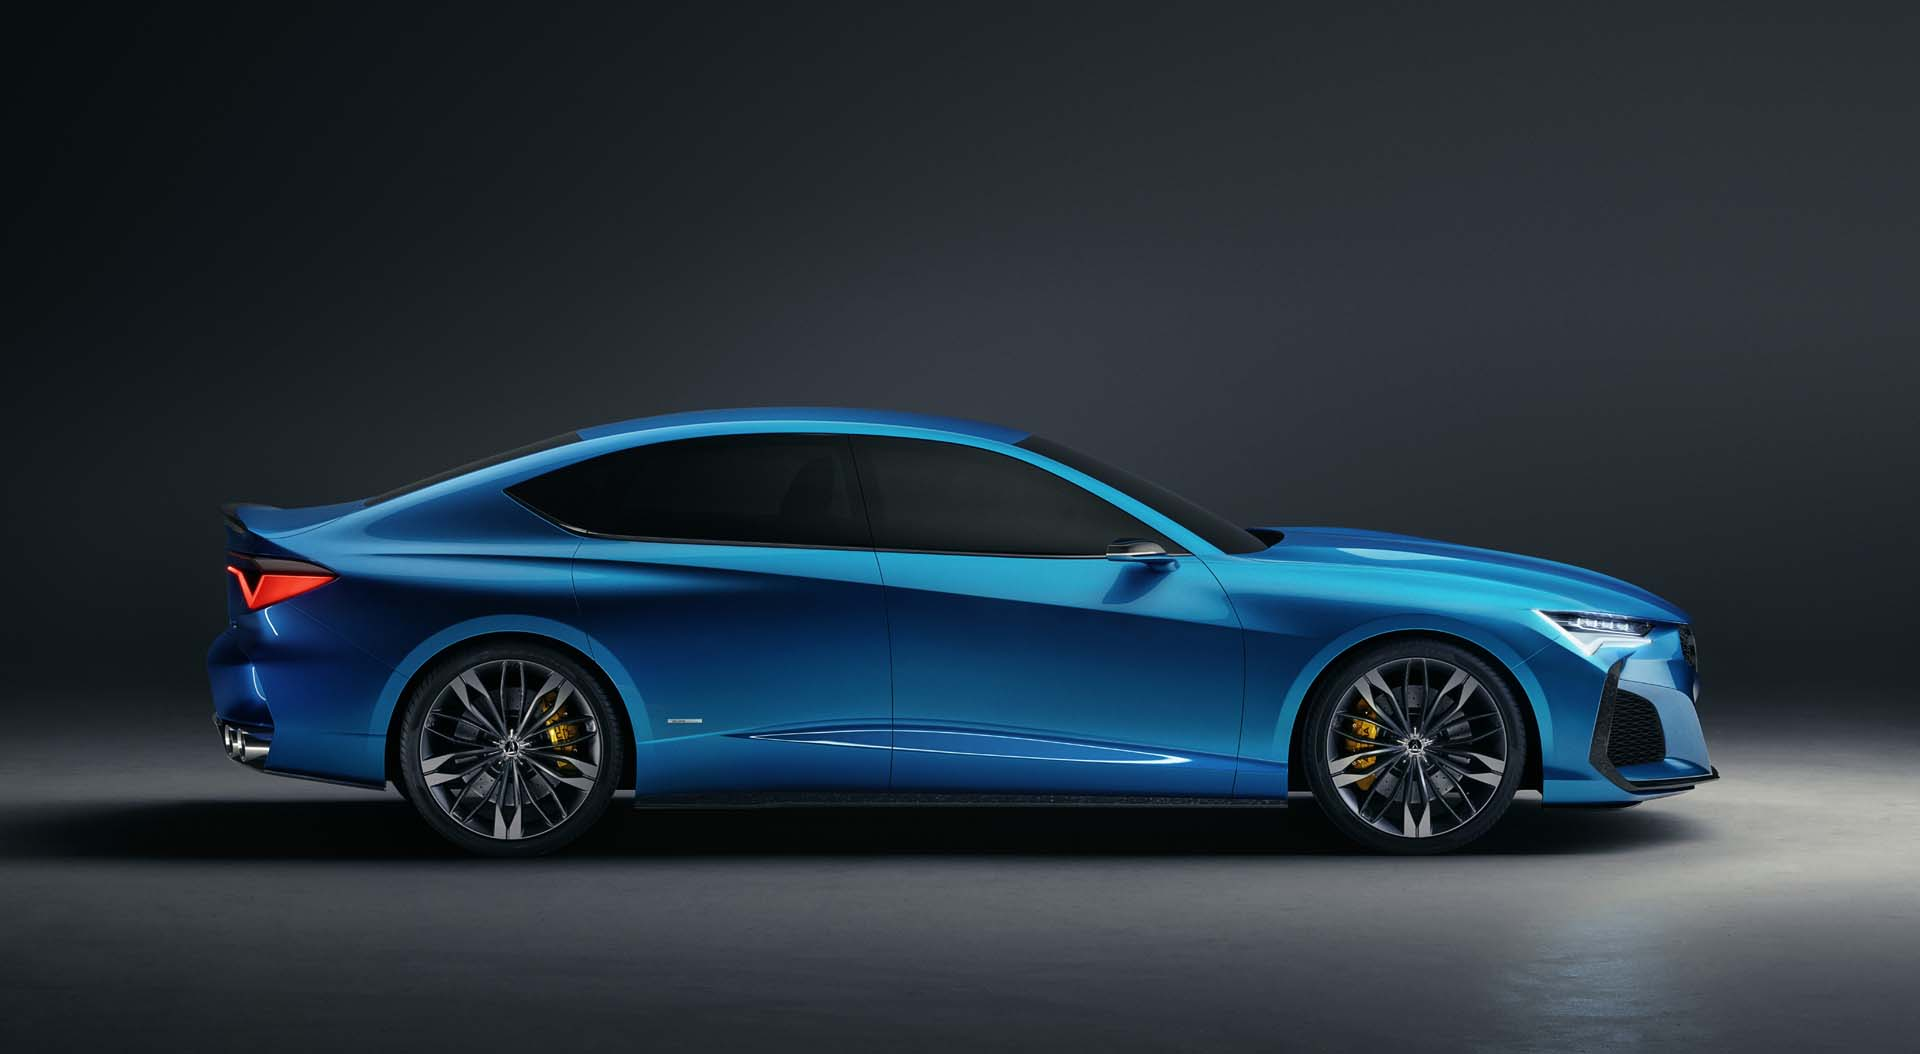 Acura Type S concept previews a sporty next-generation TLX